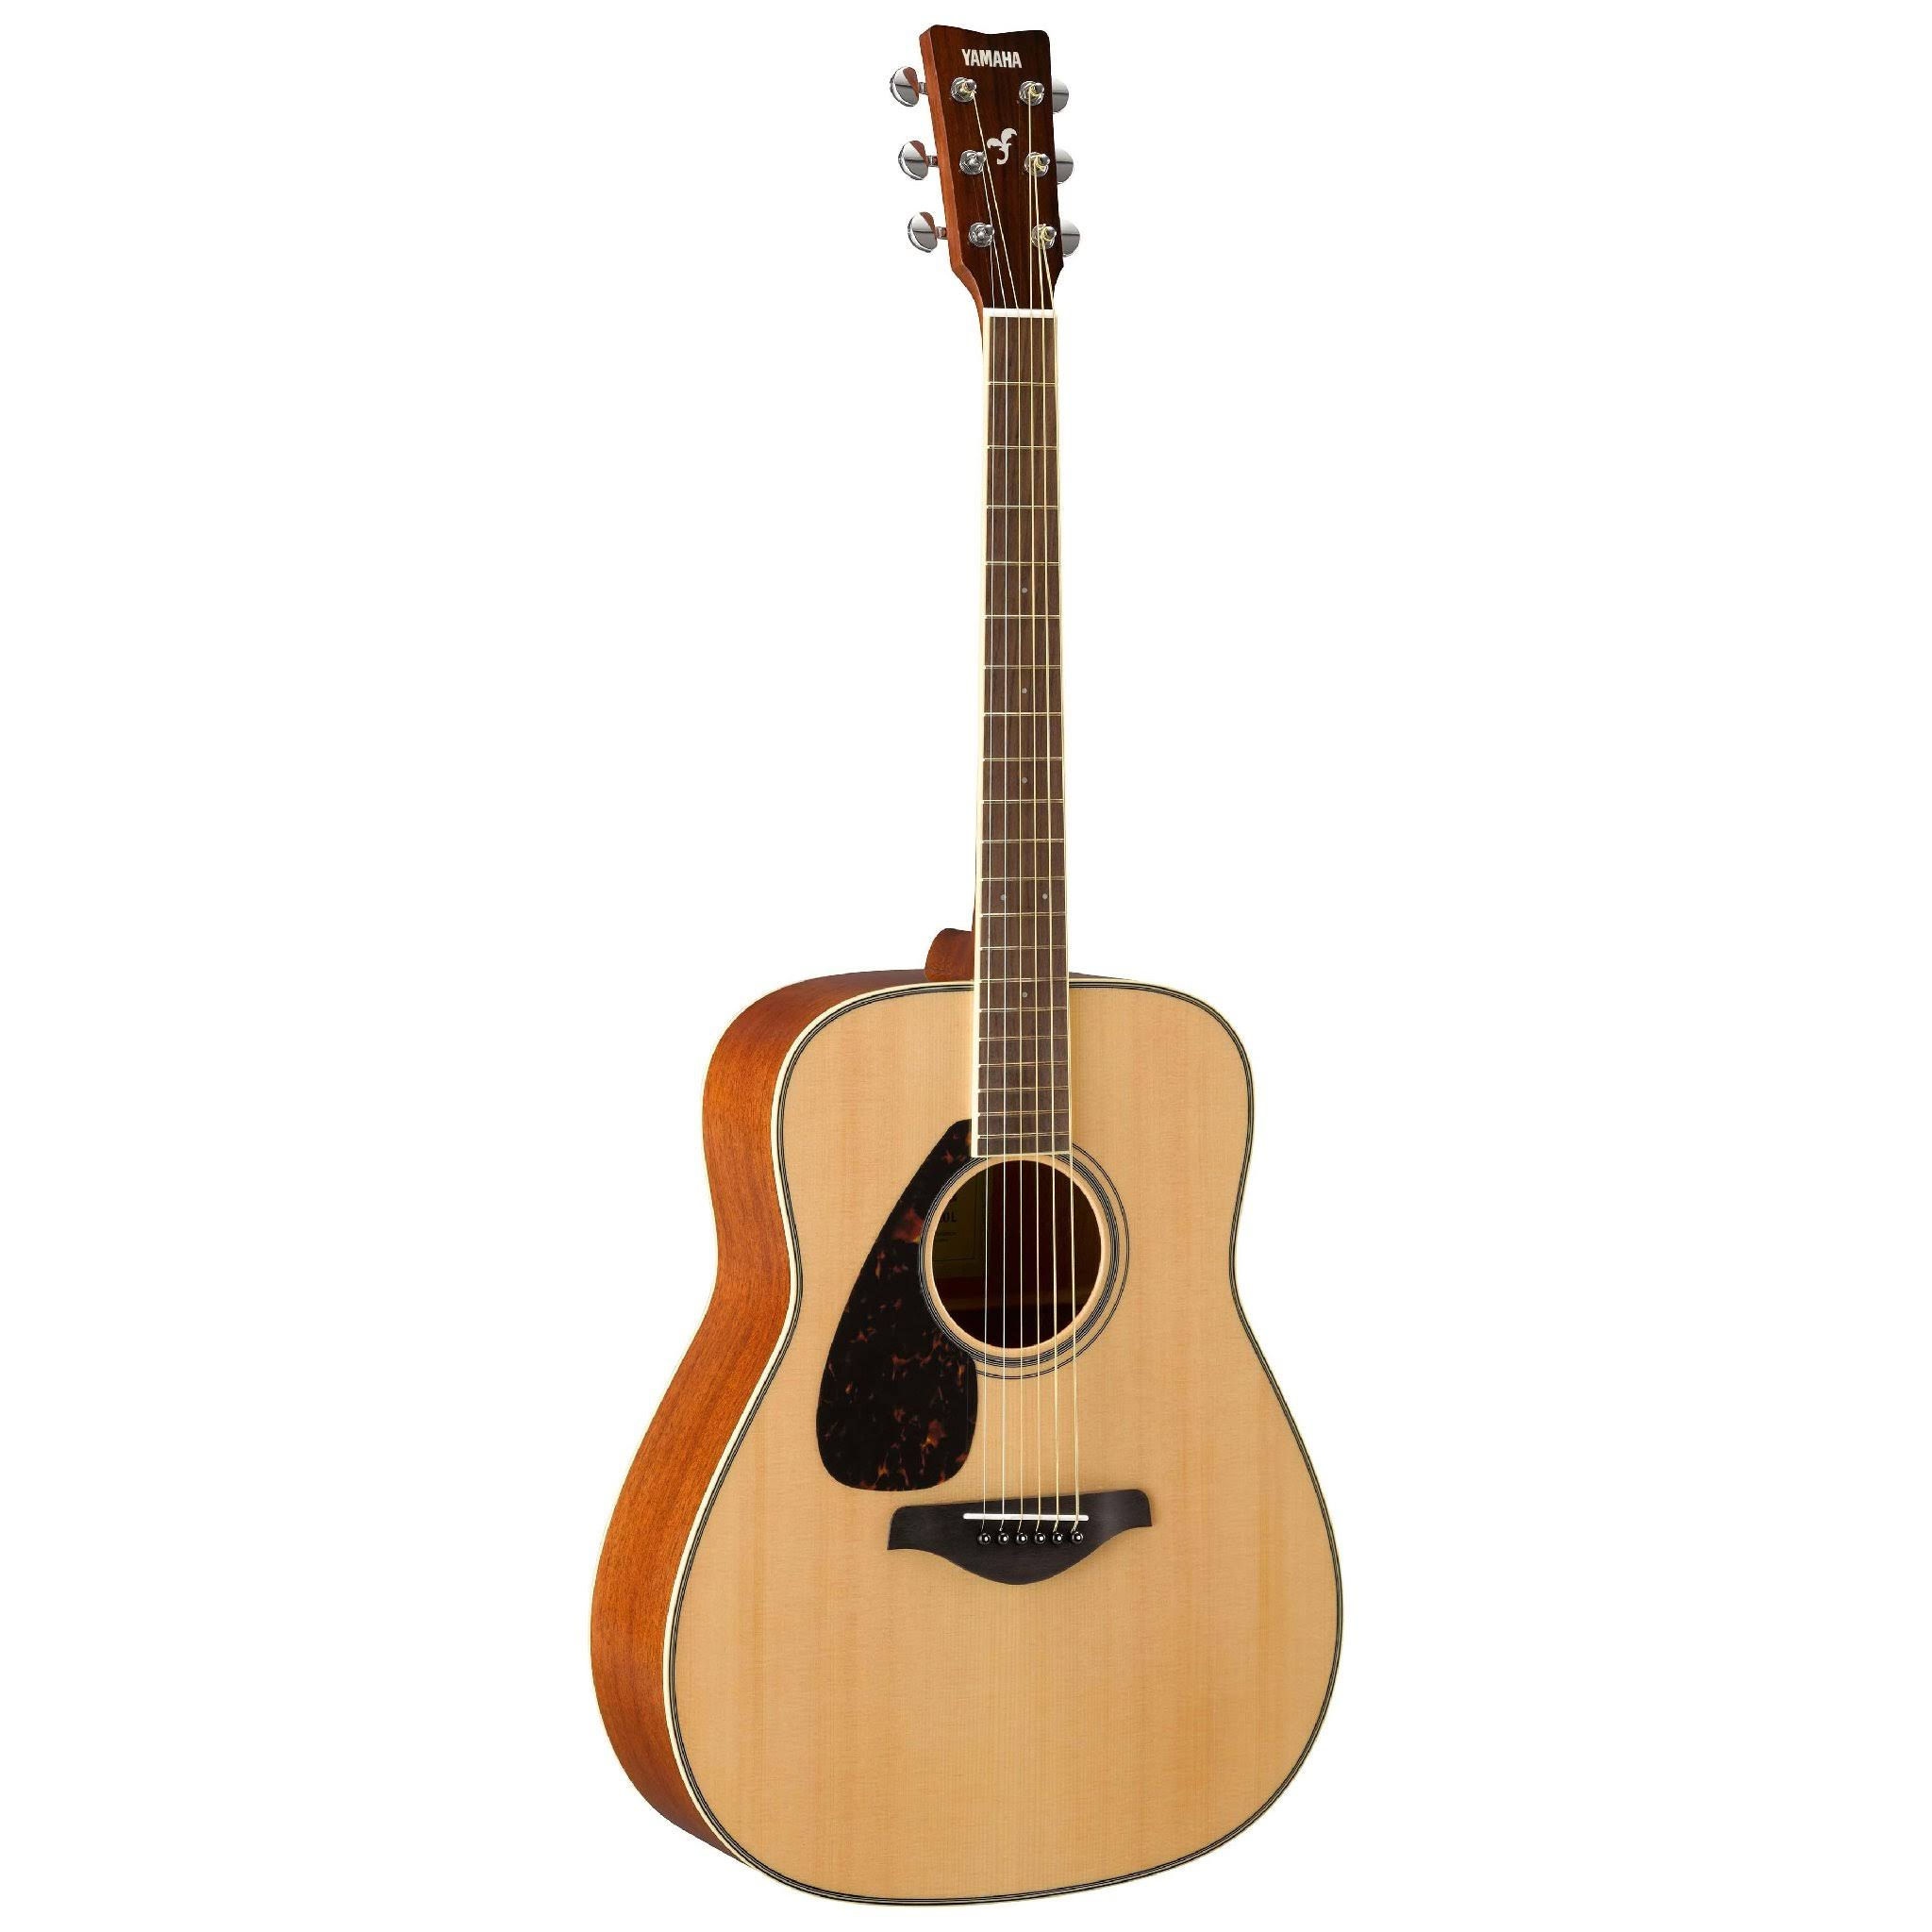 Yamaha FG820L Dreadnought Acoustic Guitar - Natural, Left-Handed